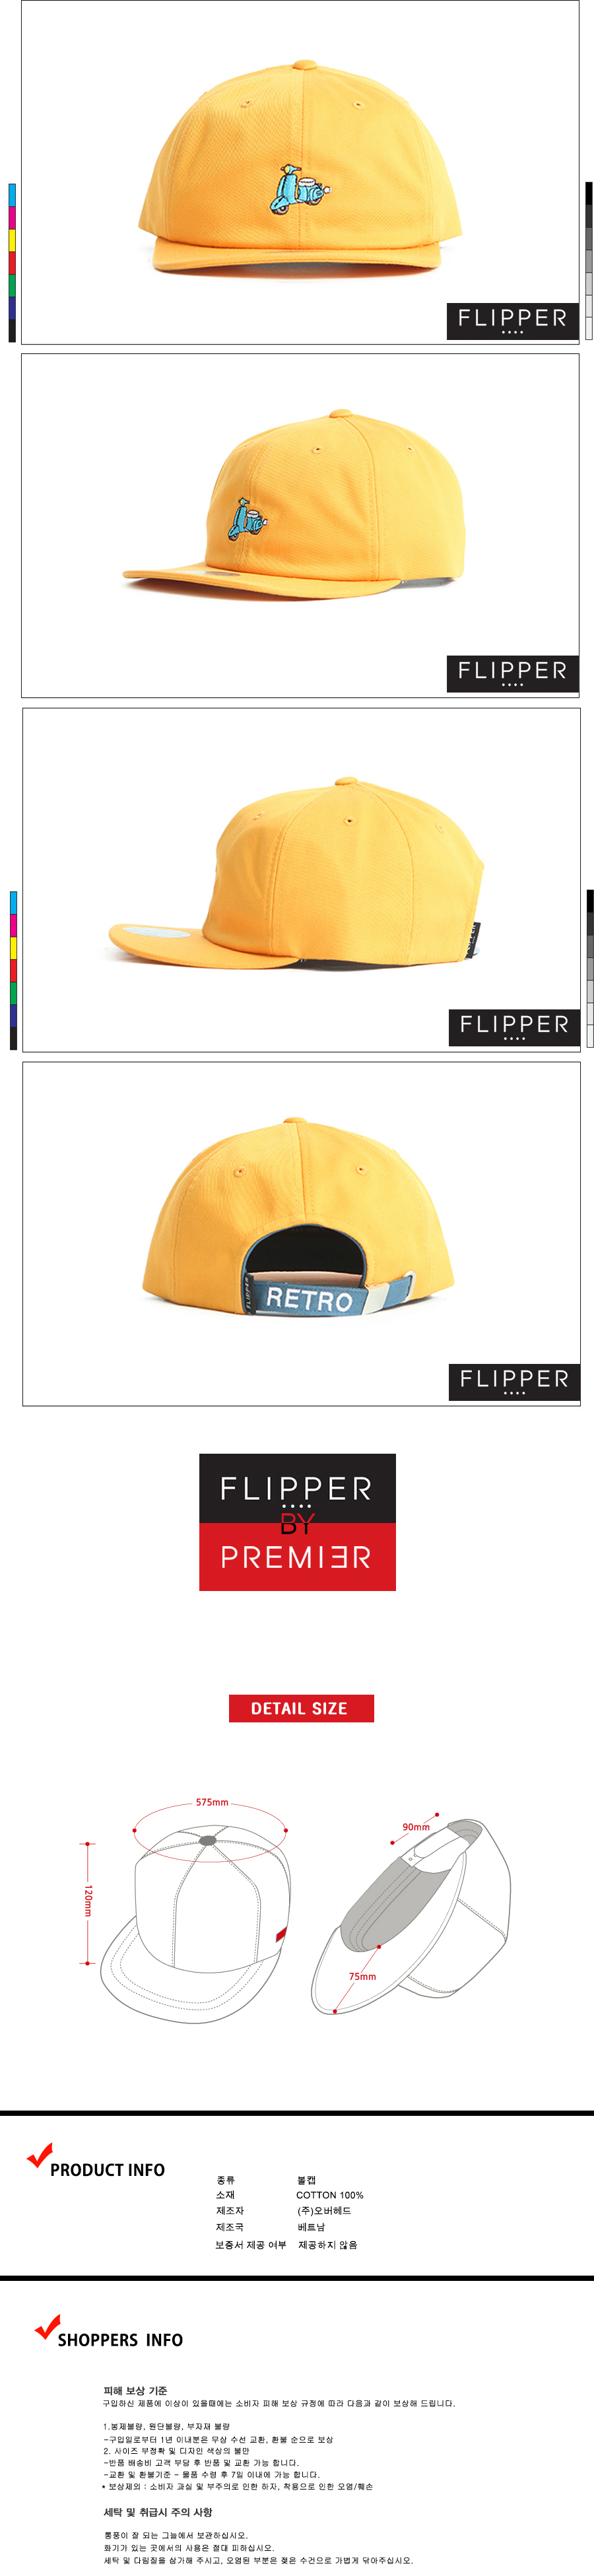 [ PREMIER ] [Premier] Flipper Ball Cap Scooter Icon Mustard (FL058)